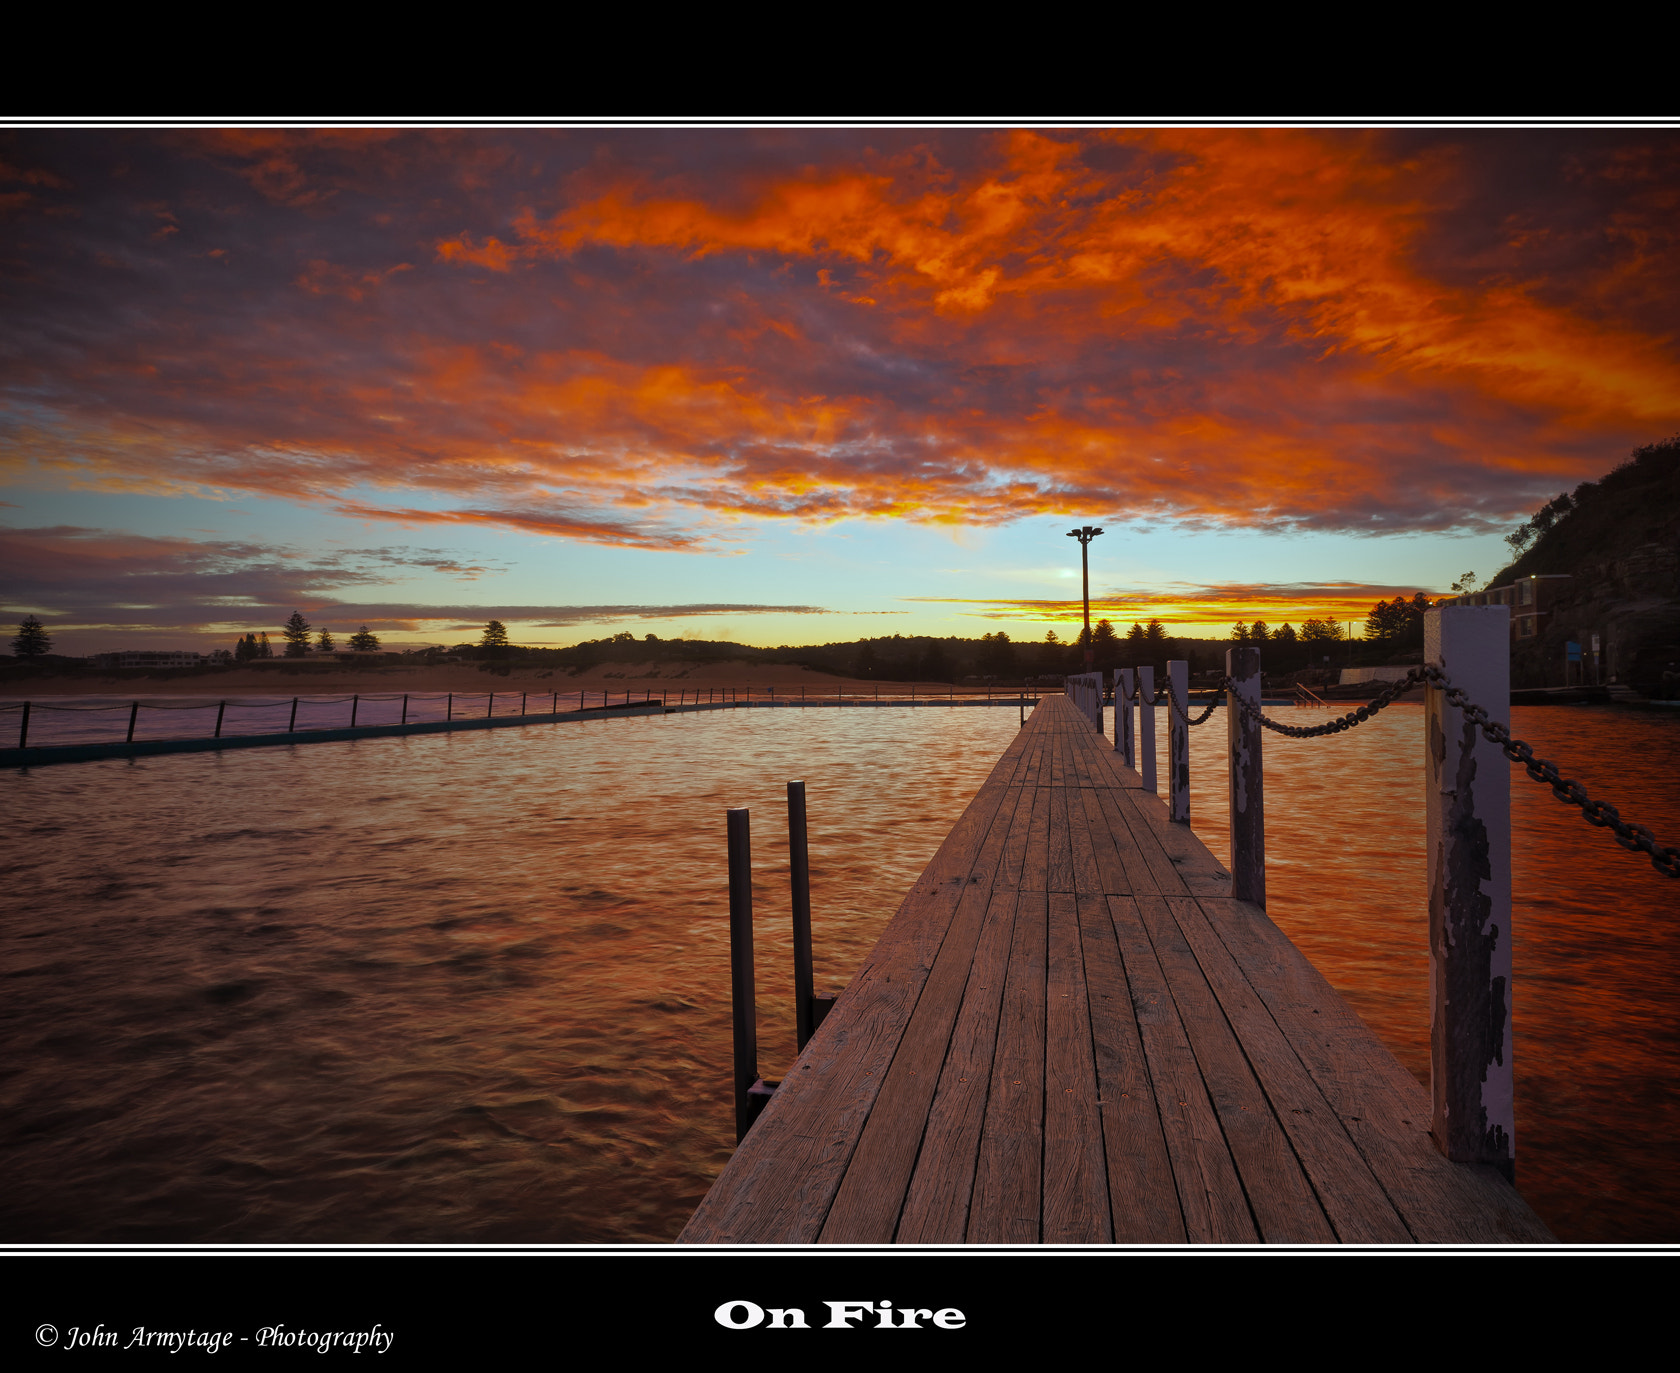 Photograph On Fire by John Armytage on 500px